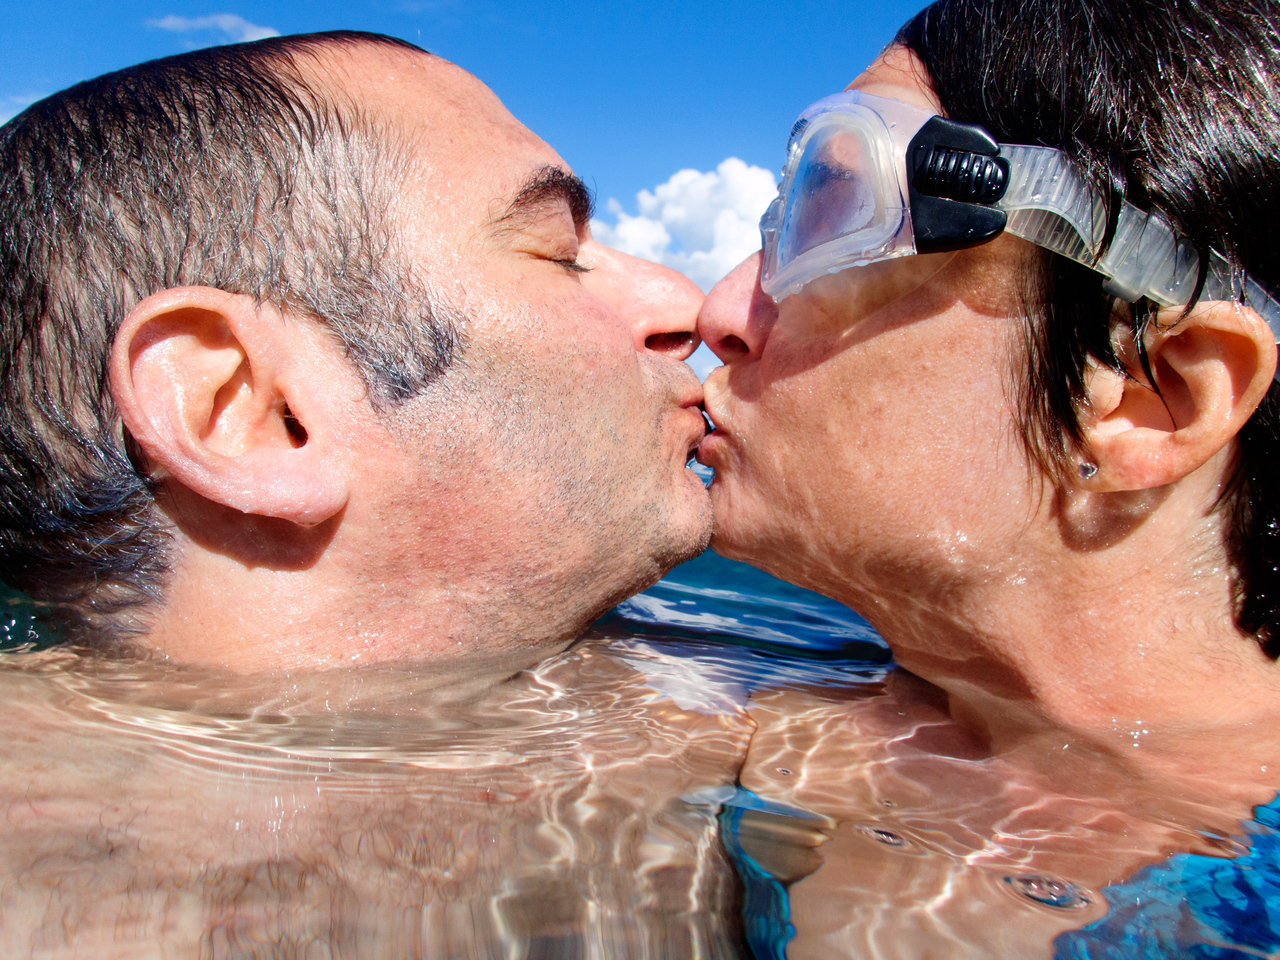 Kiss in the sea.